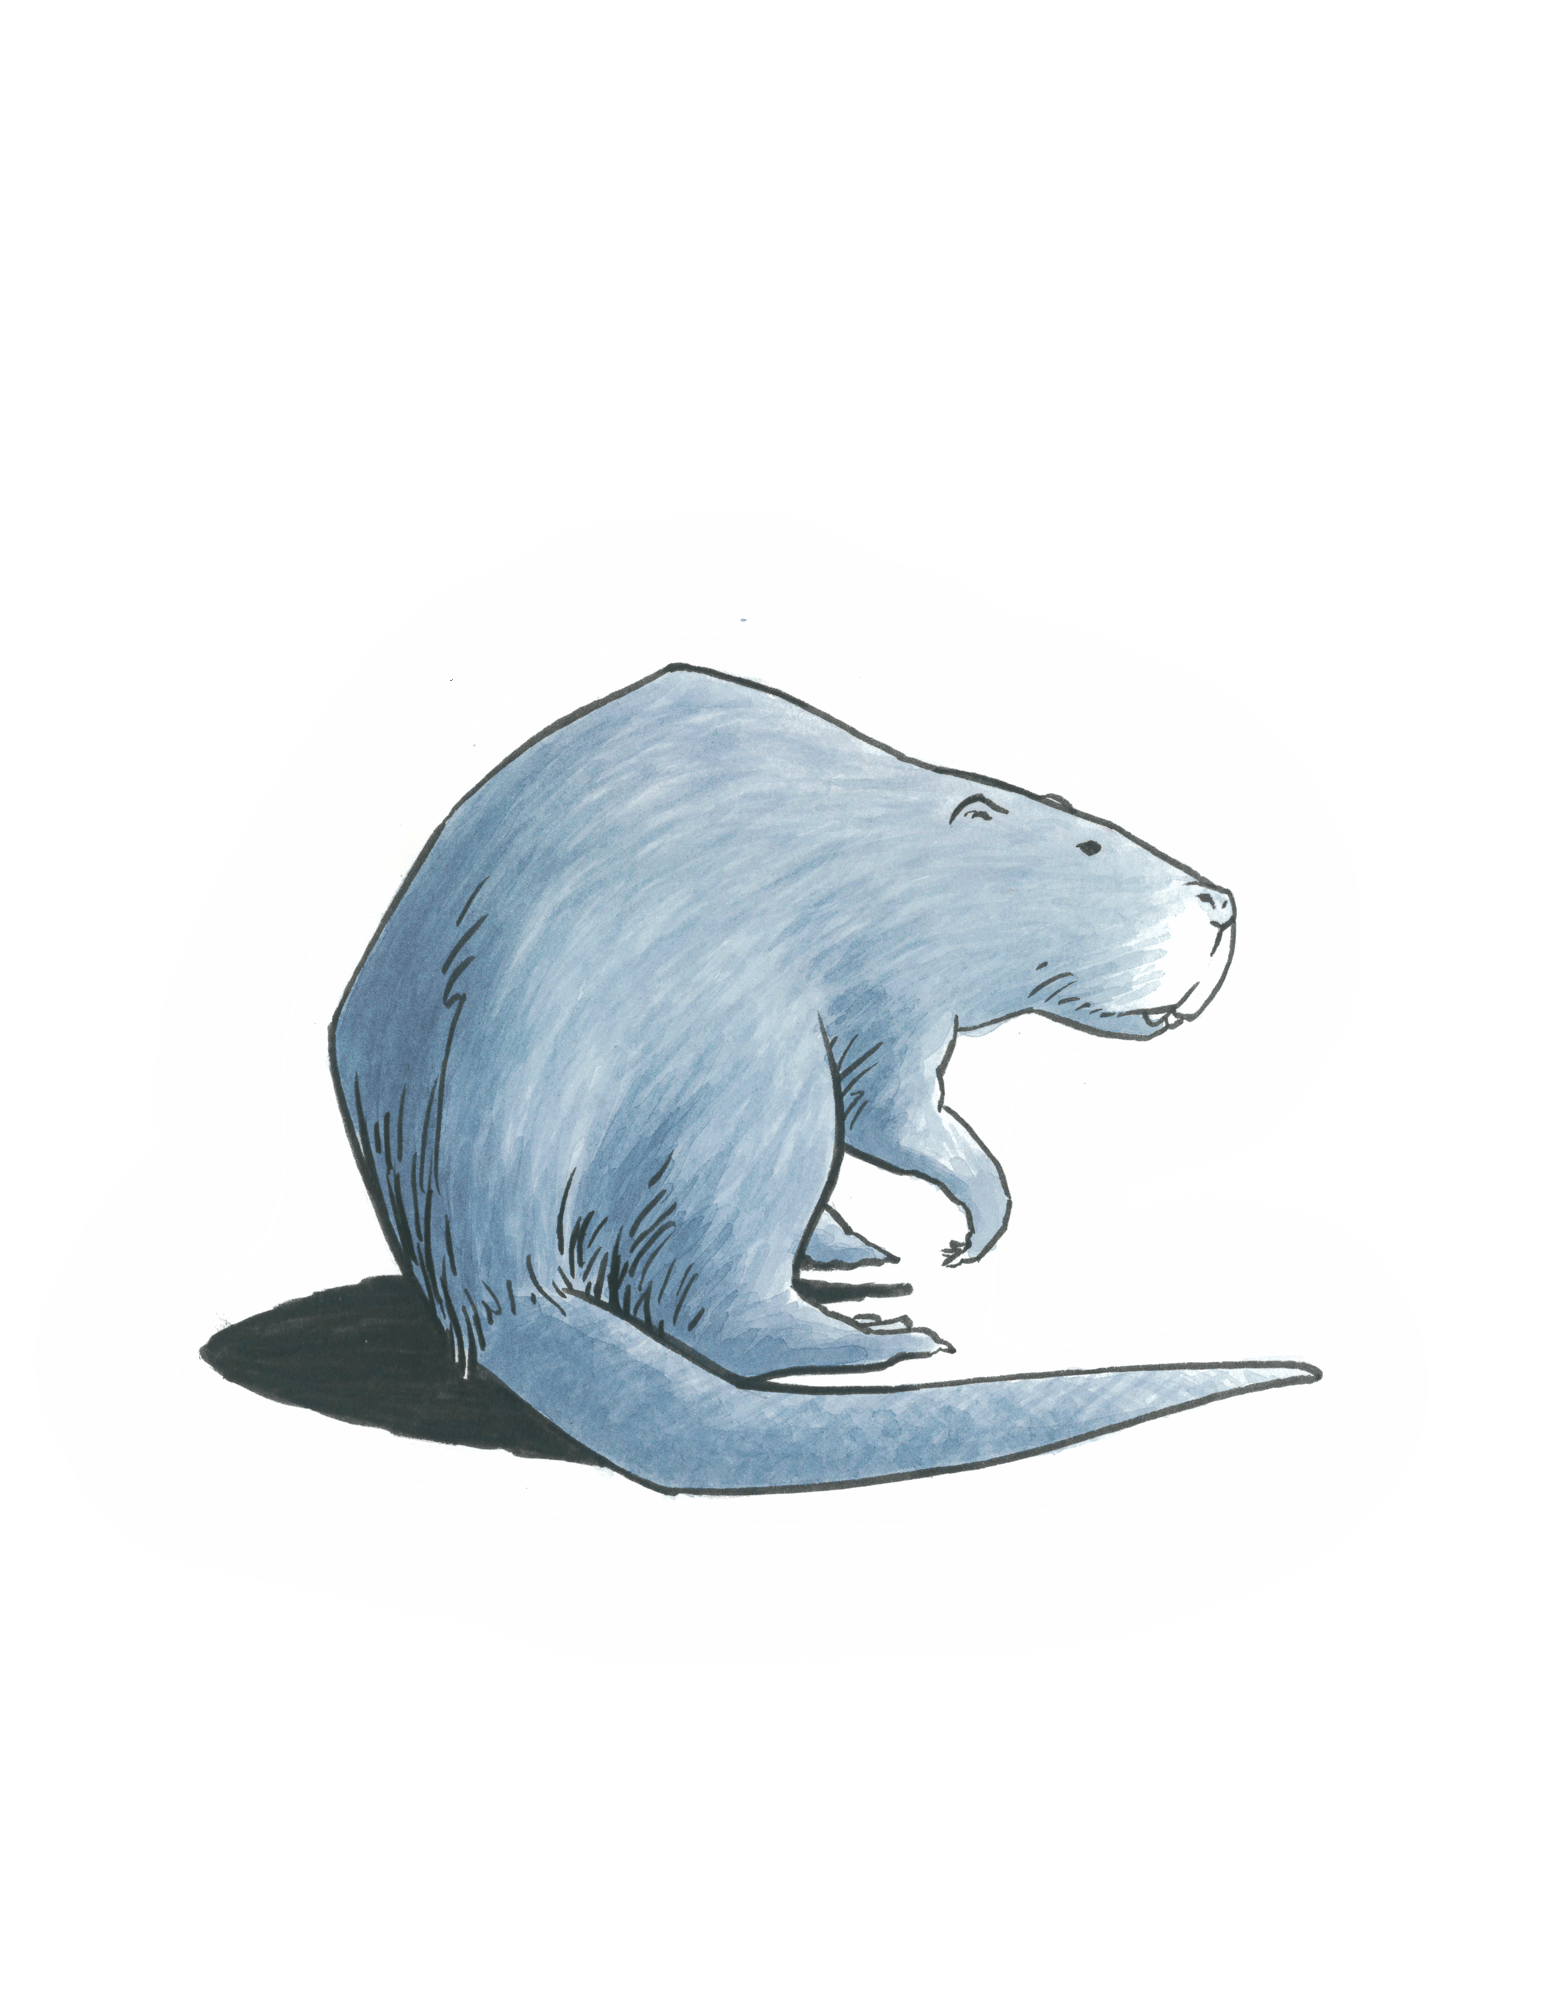 An illustration of a giant beaver